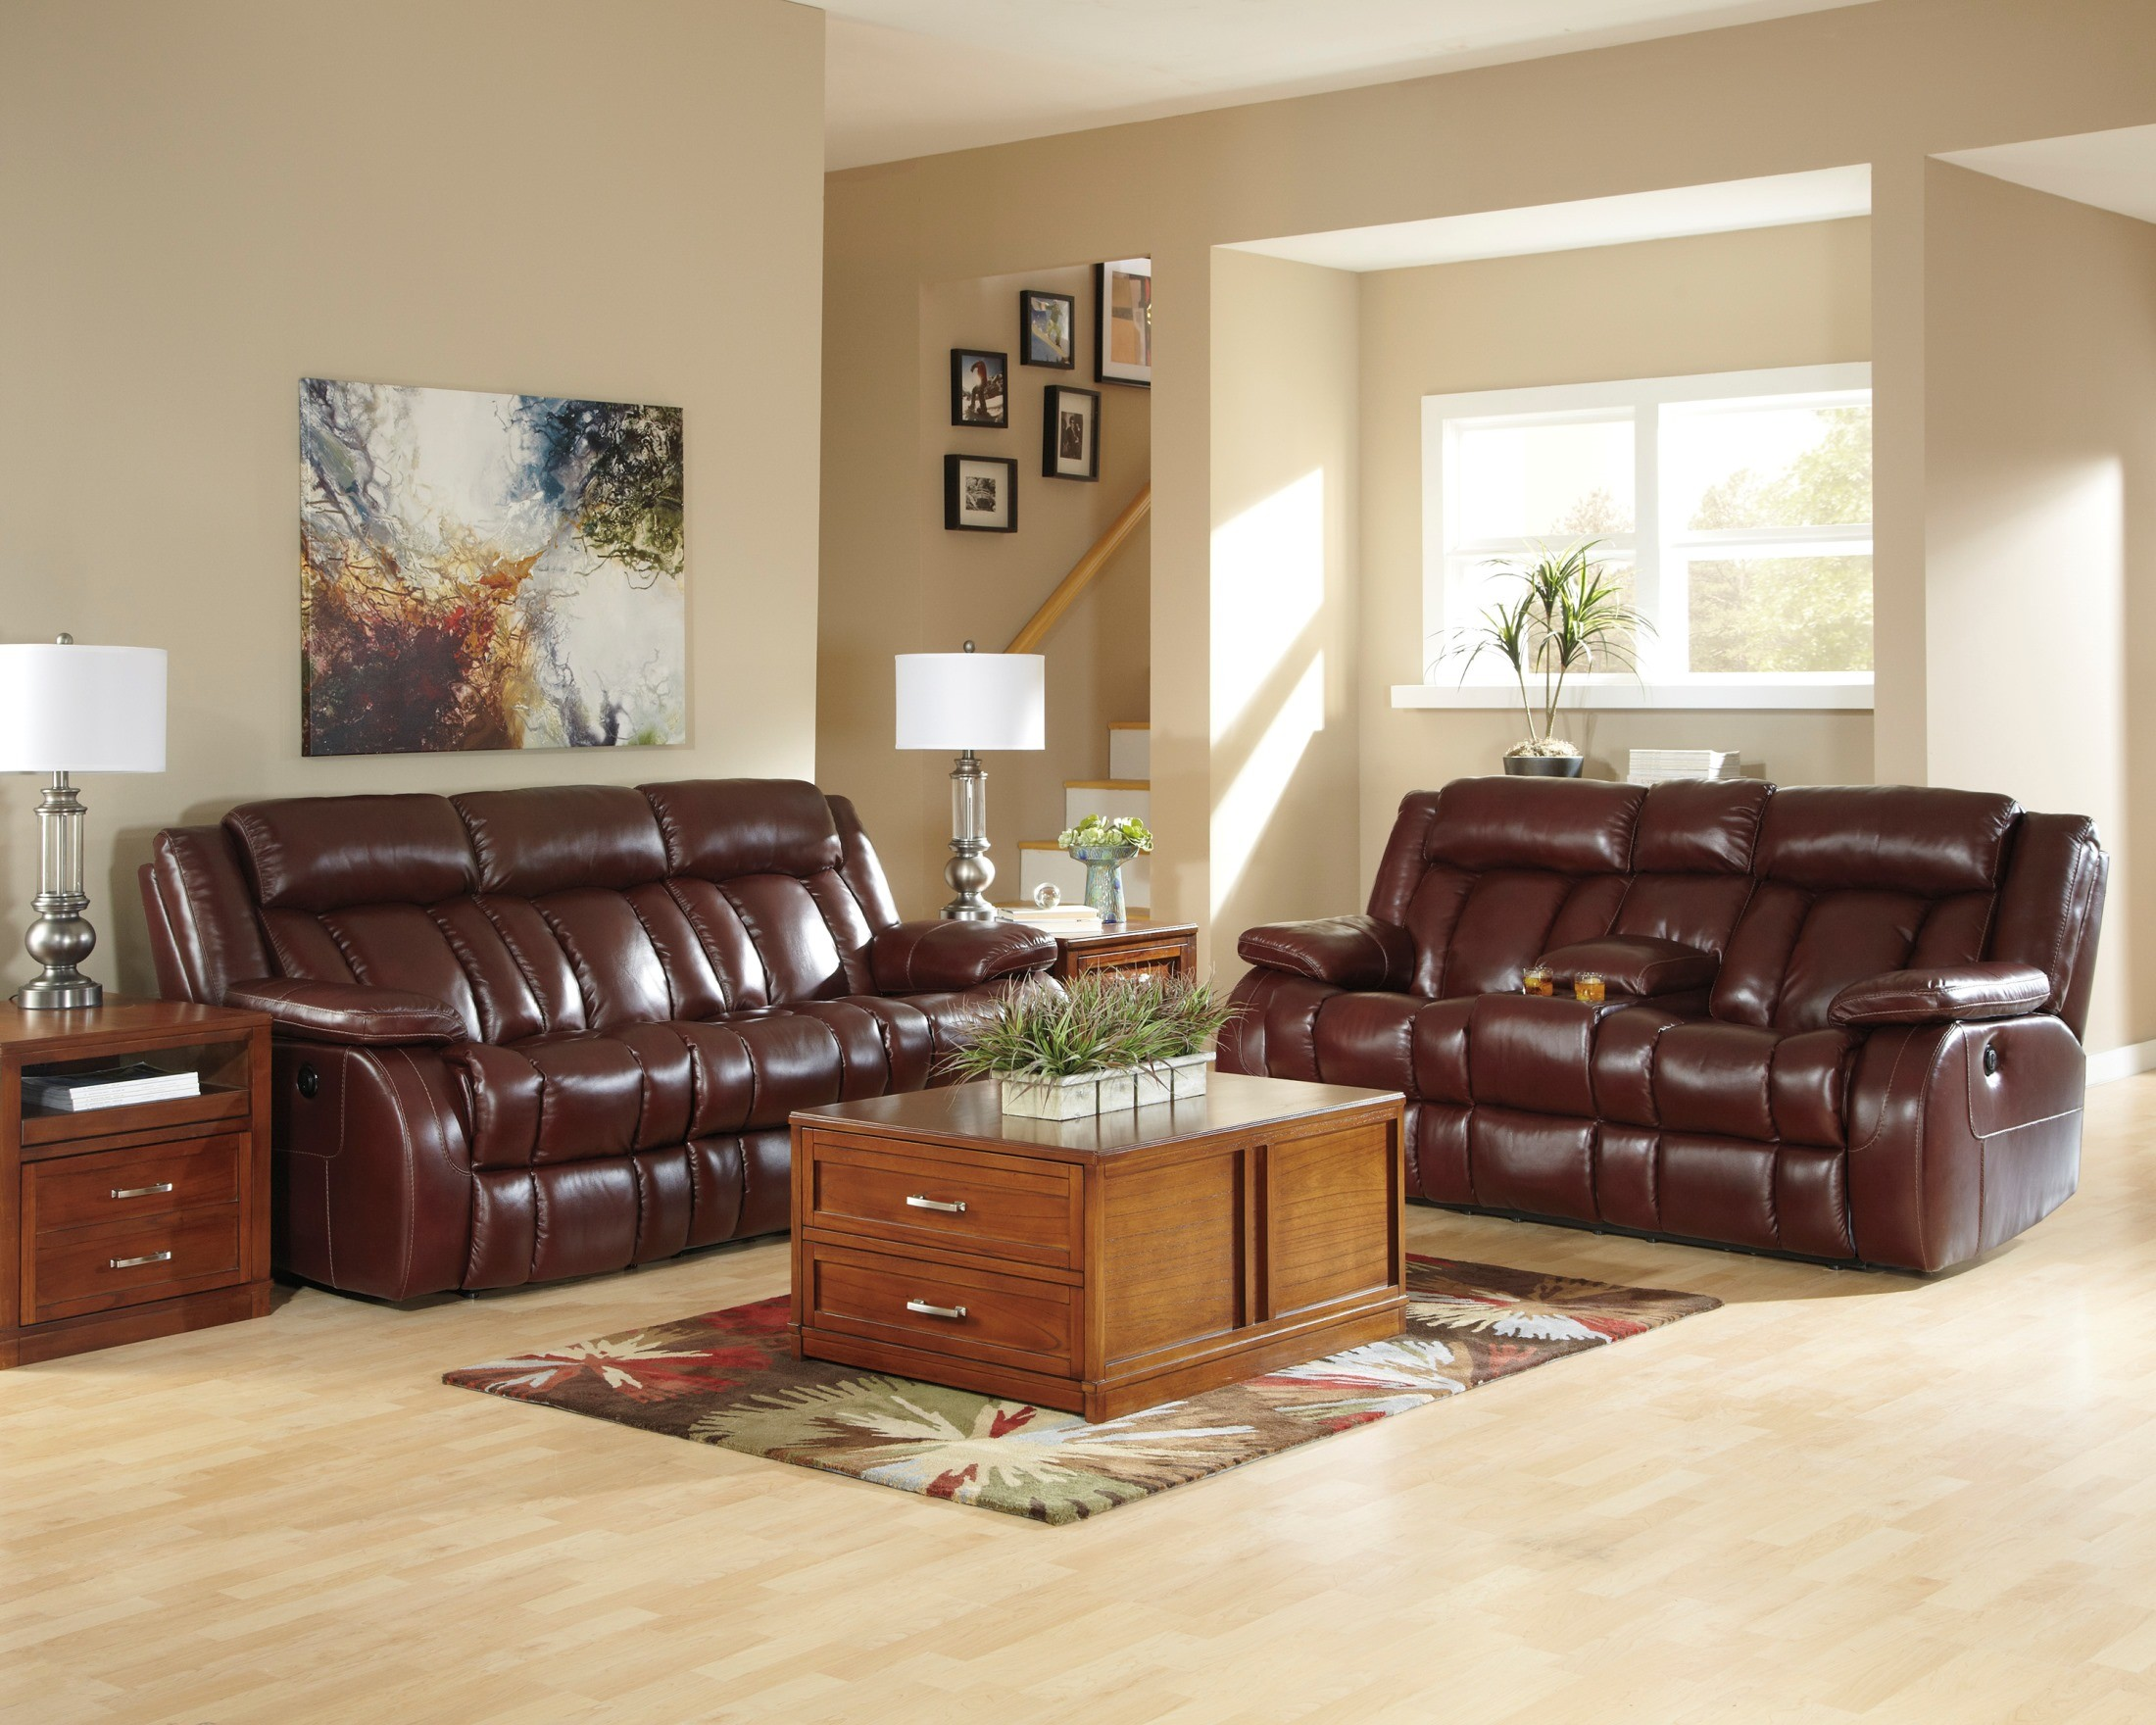 Gately Lift Top Cocktail Table Dainan Chestnut Double Reclining Loveseat with Console, U8950194 ...